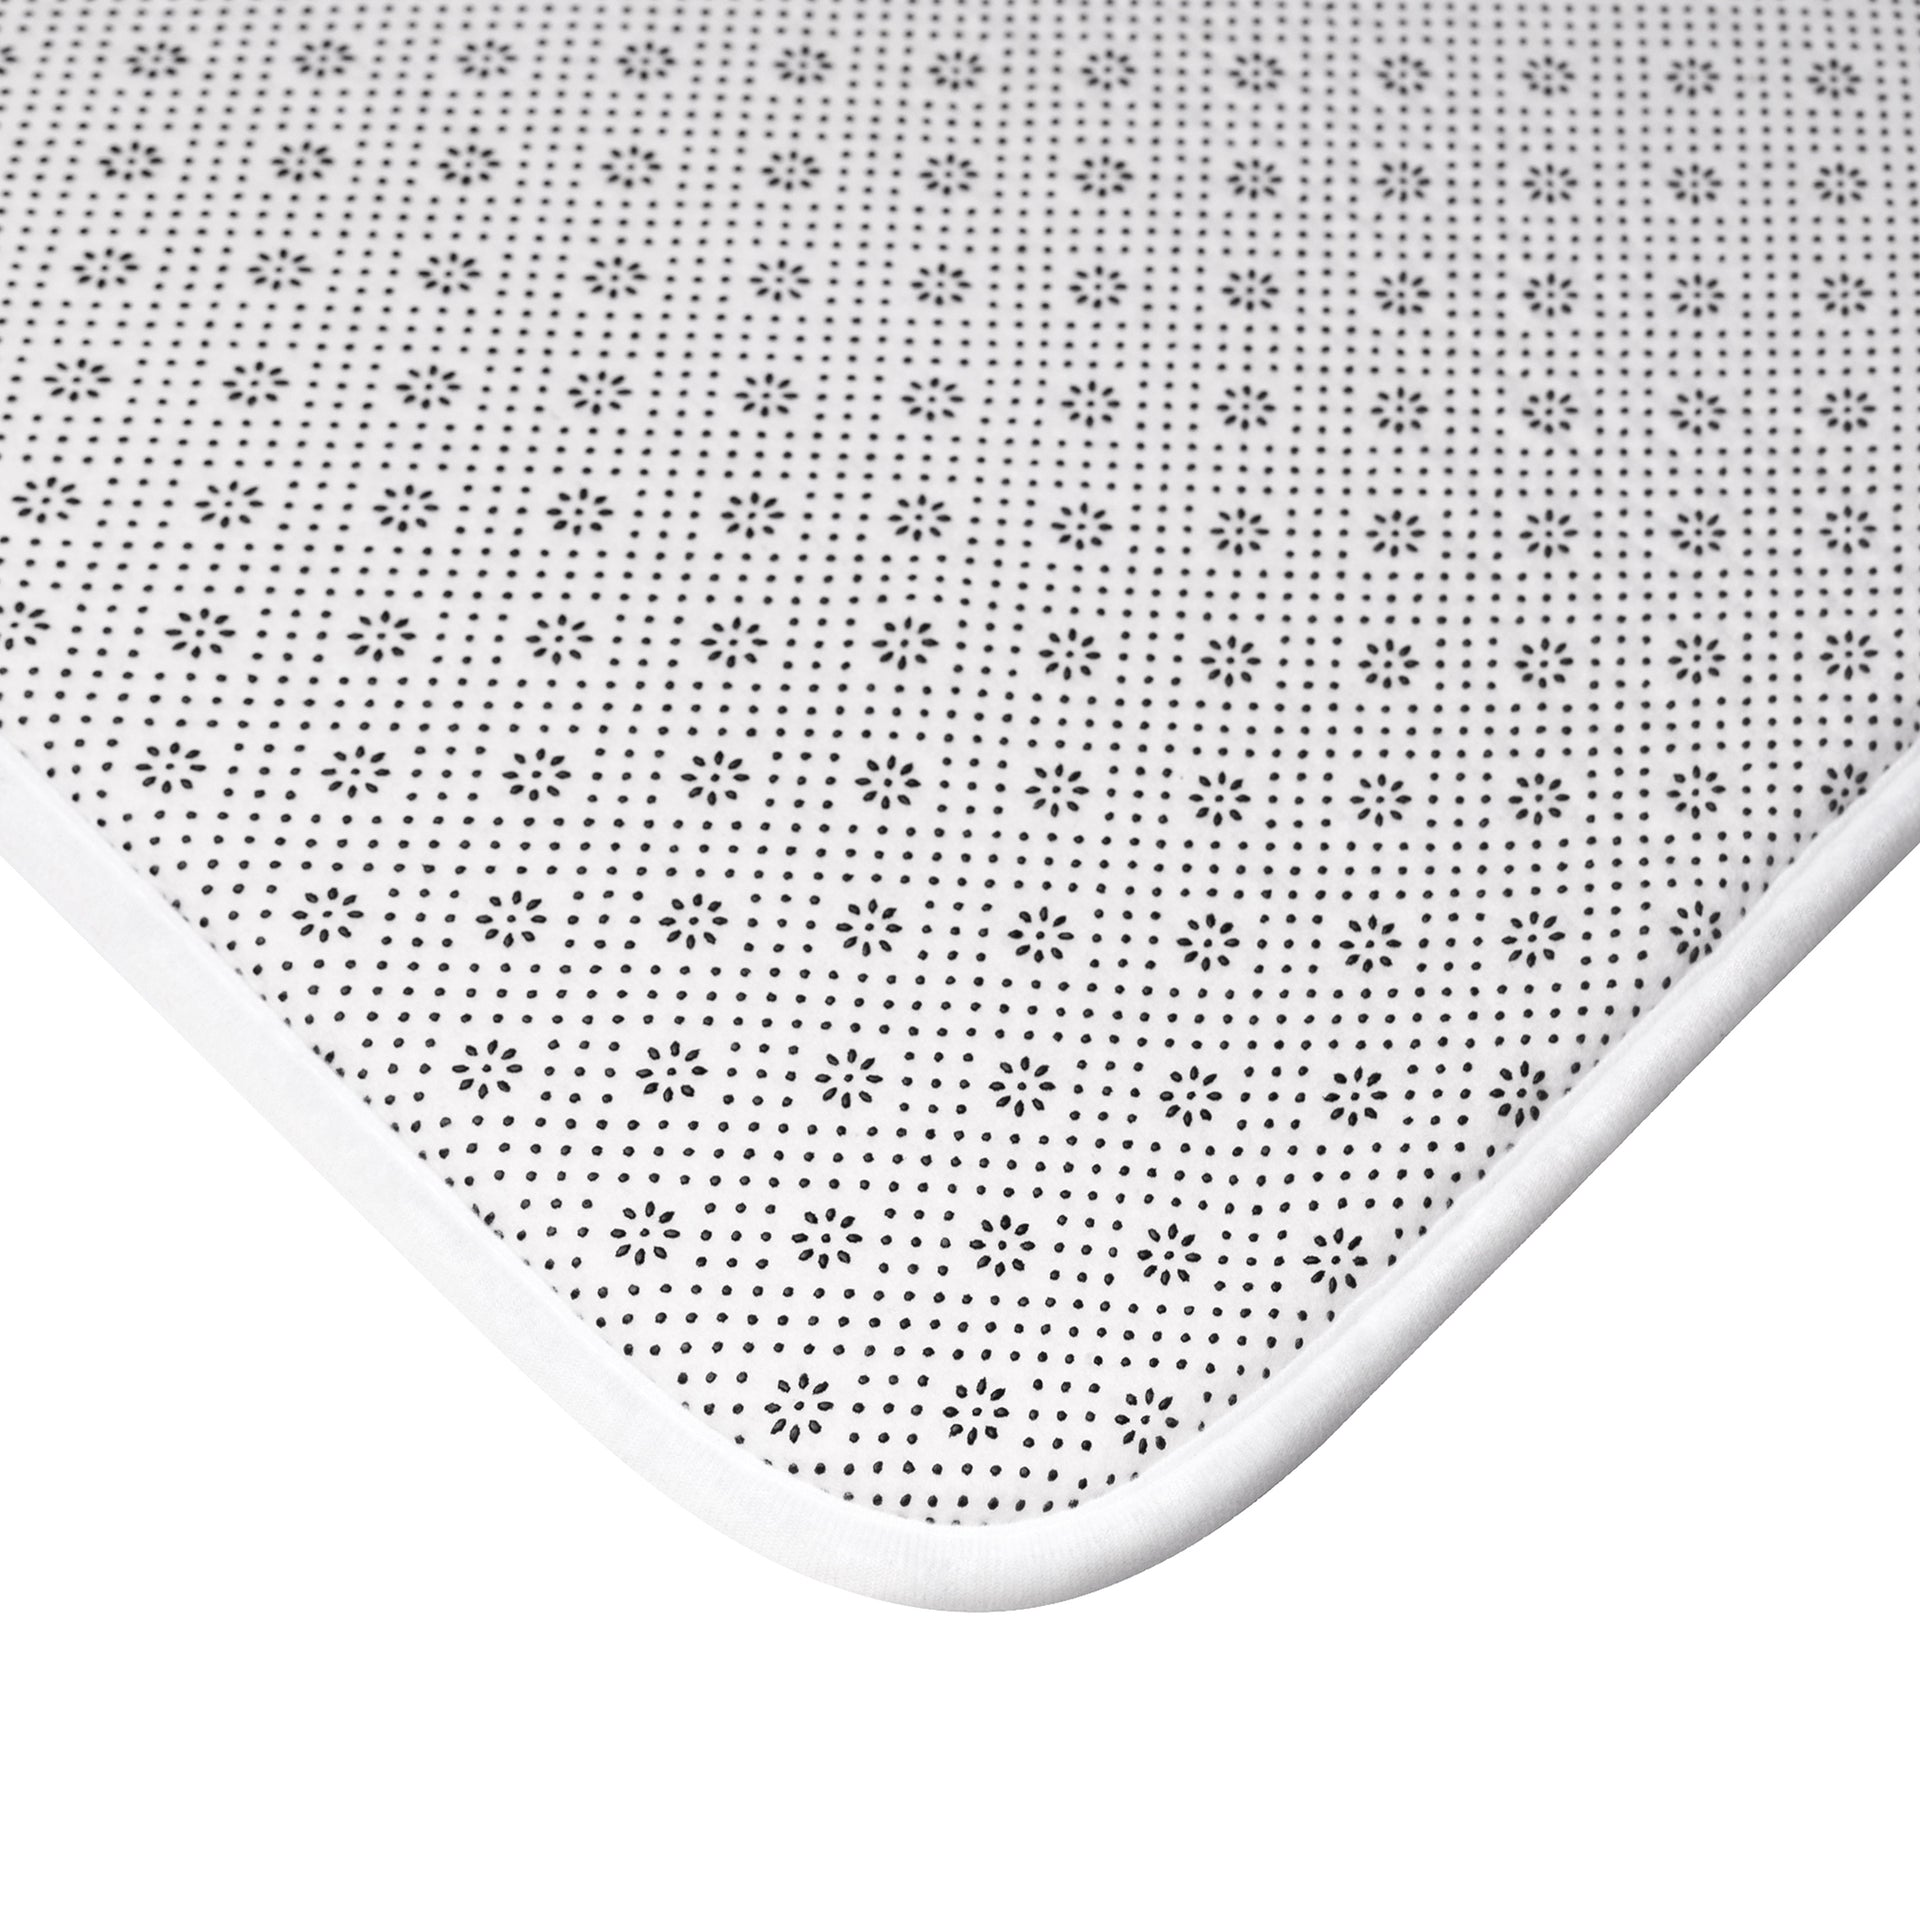 OPTICAL ILLUSION Bath Mat - FlowArt Co